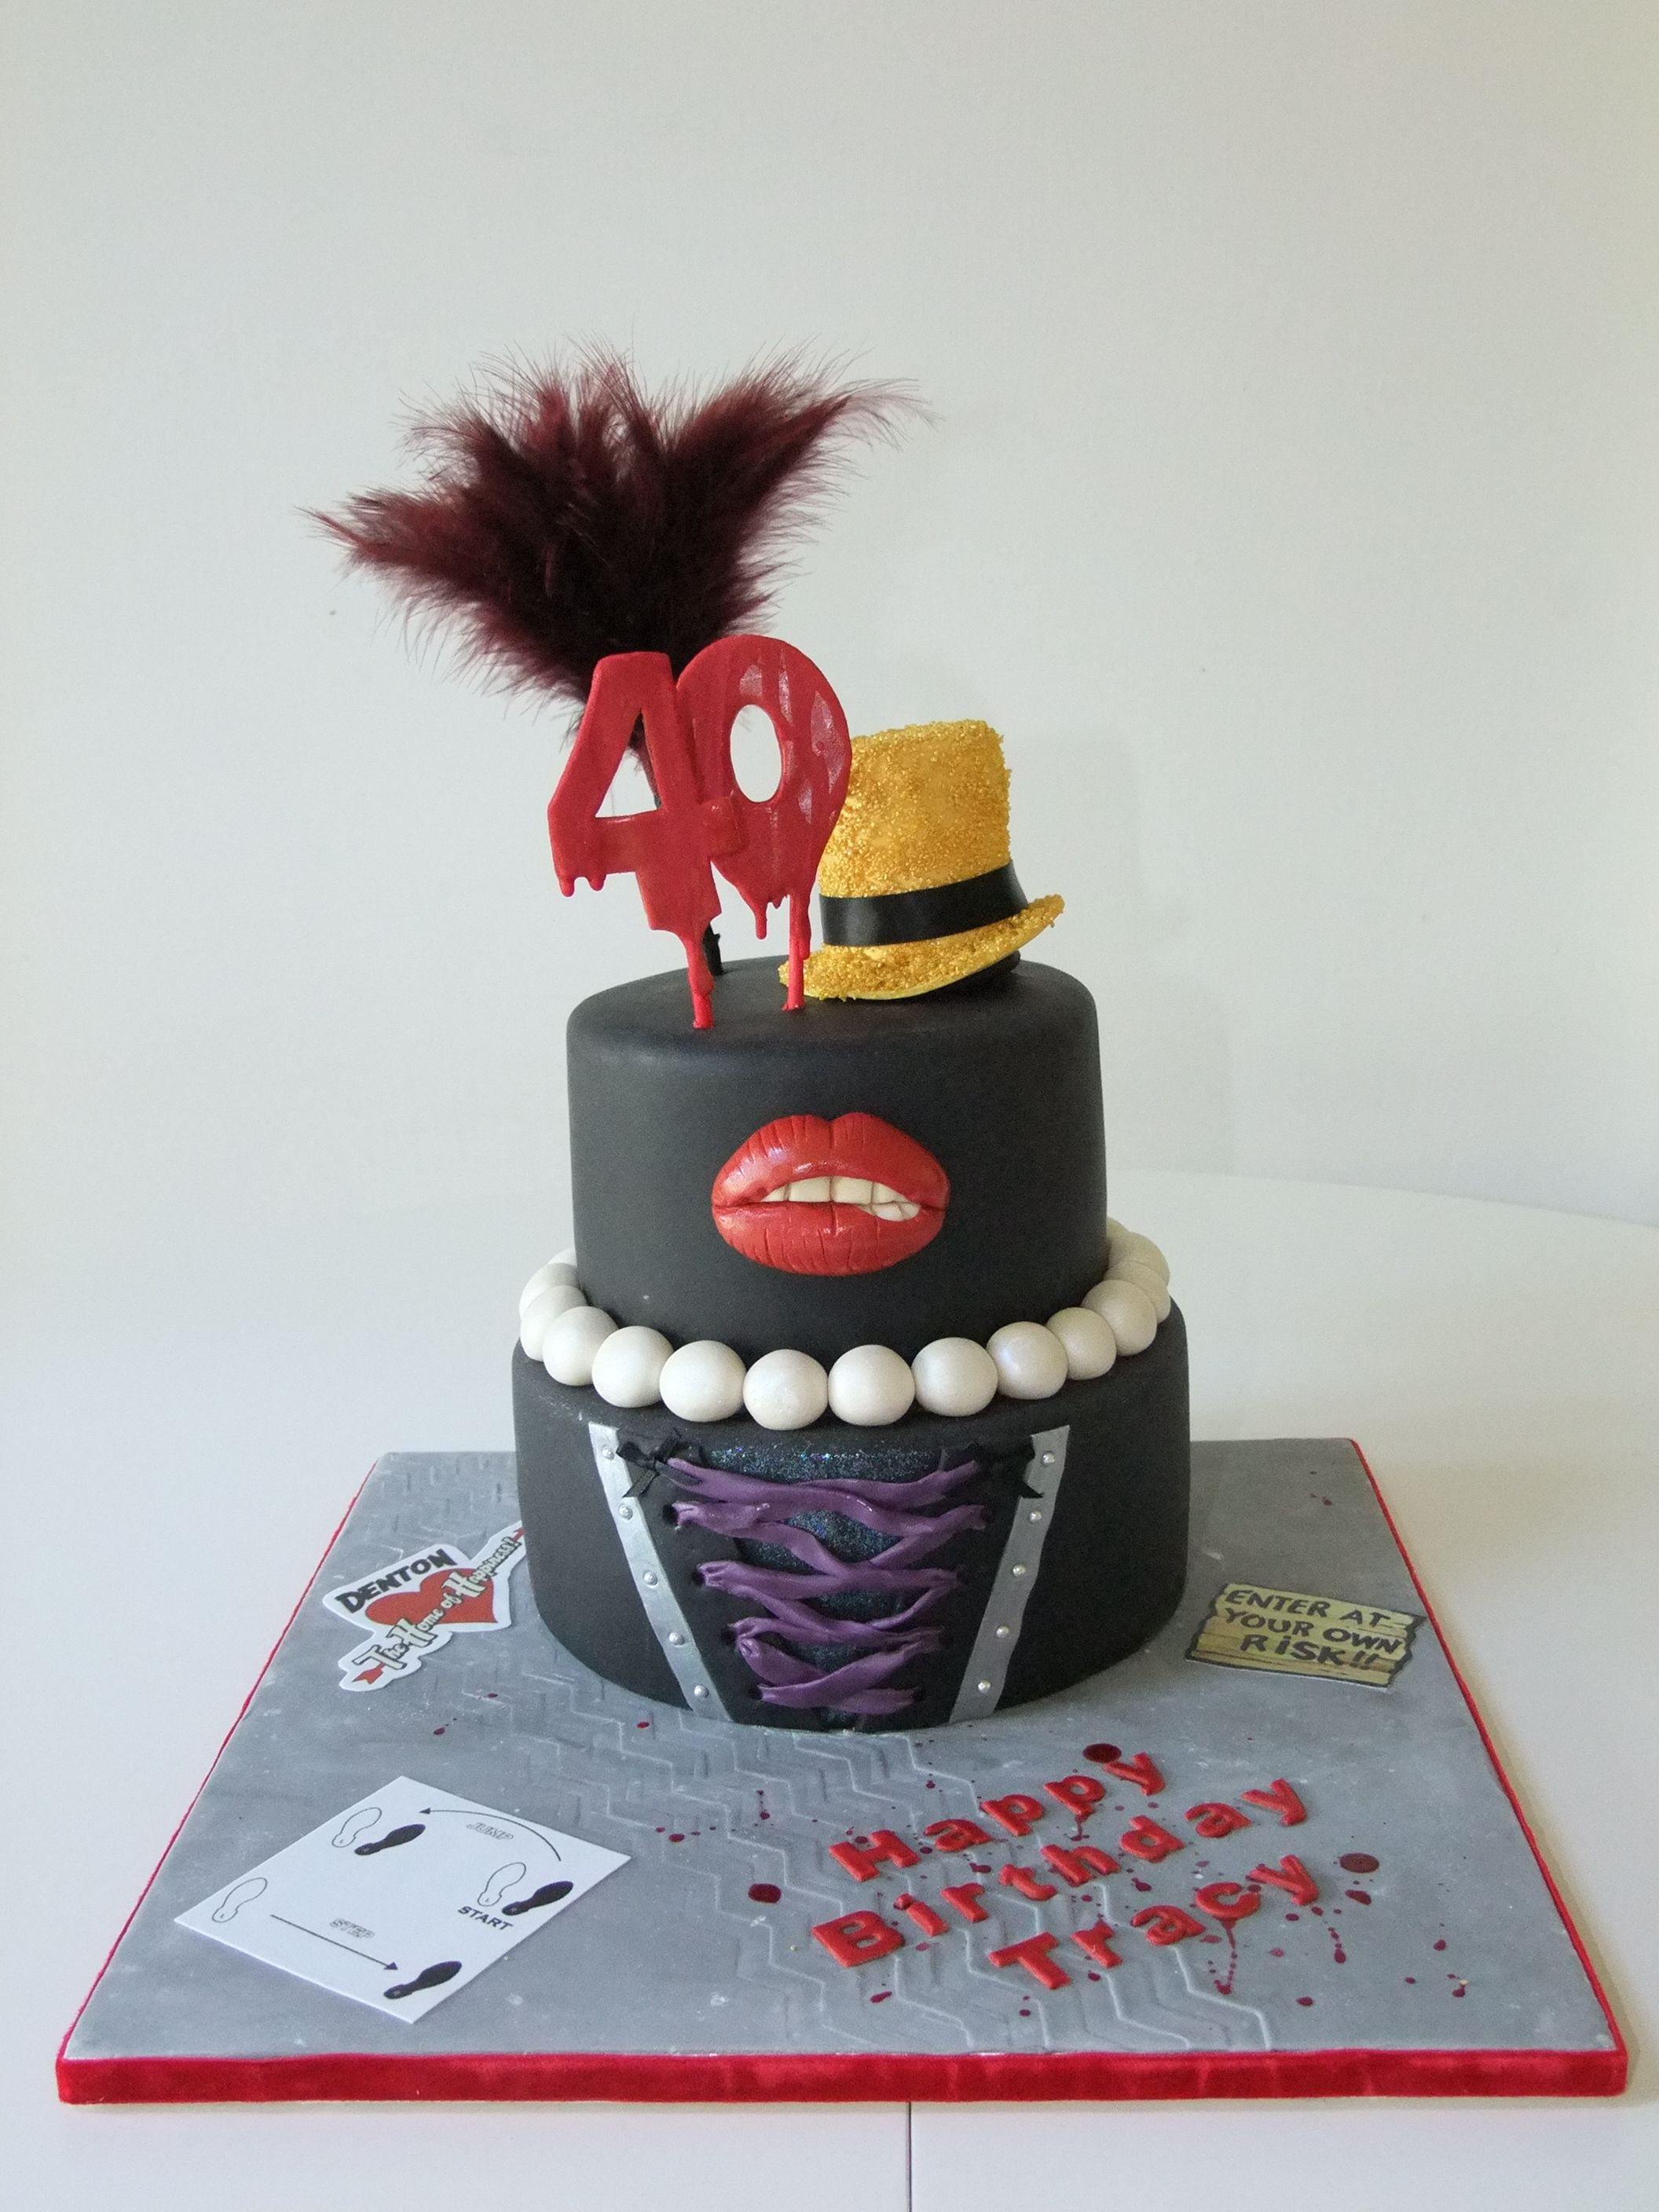 rocky horror picture show 40th birthday cake belly full. Black Bedroom Furniture Sets. Home Design Ideas